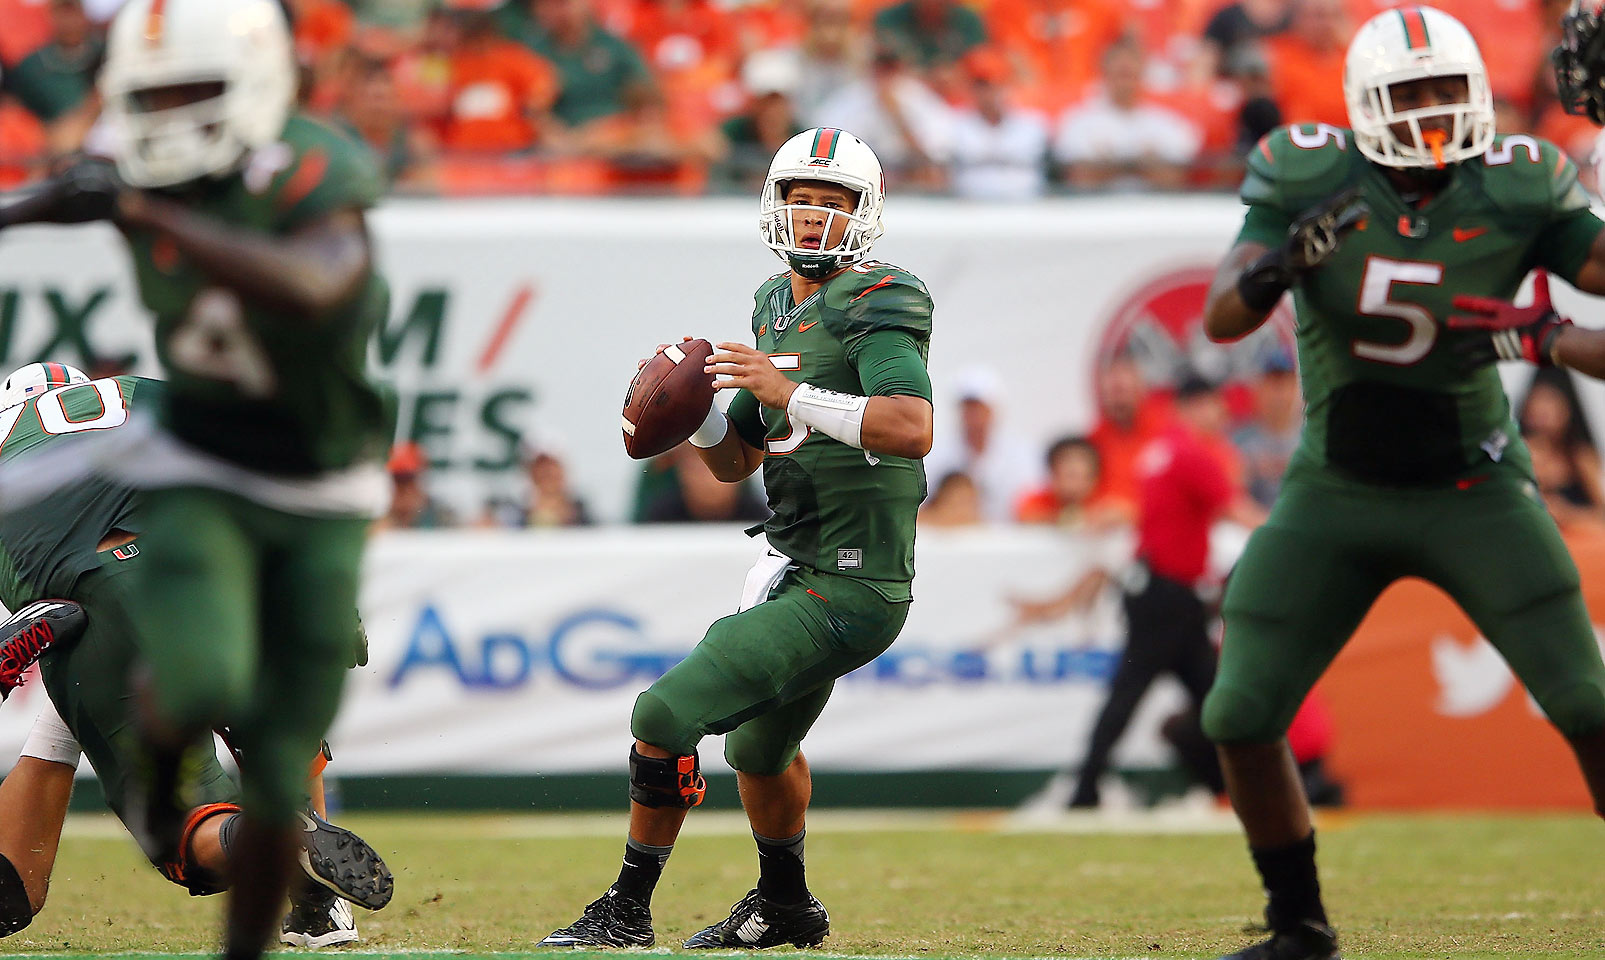 Kaaya was tasked with restoring The U as just a true freshman, and he performed well even as the Hurricanes fell short of expectations. The quarterback threw for 26 touchdowns compared to 12 interceptions, amassing over 3,000 yards. But Kaaya will have to be even better as a sophomore to rally the Hurricanes, who lost four in a row to end 2014.